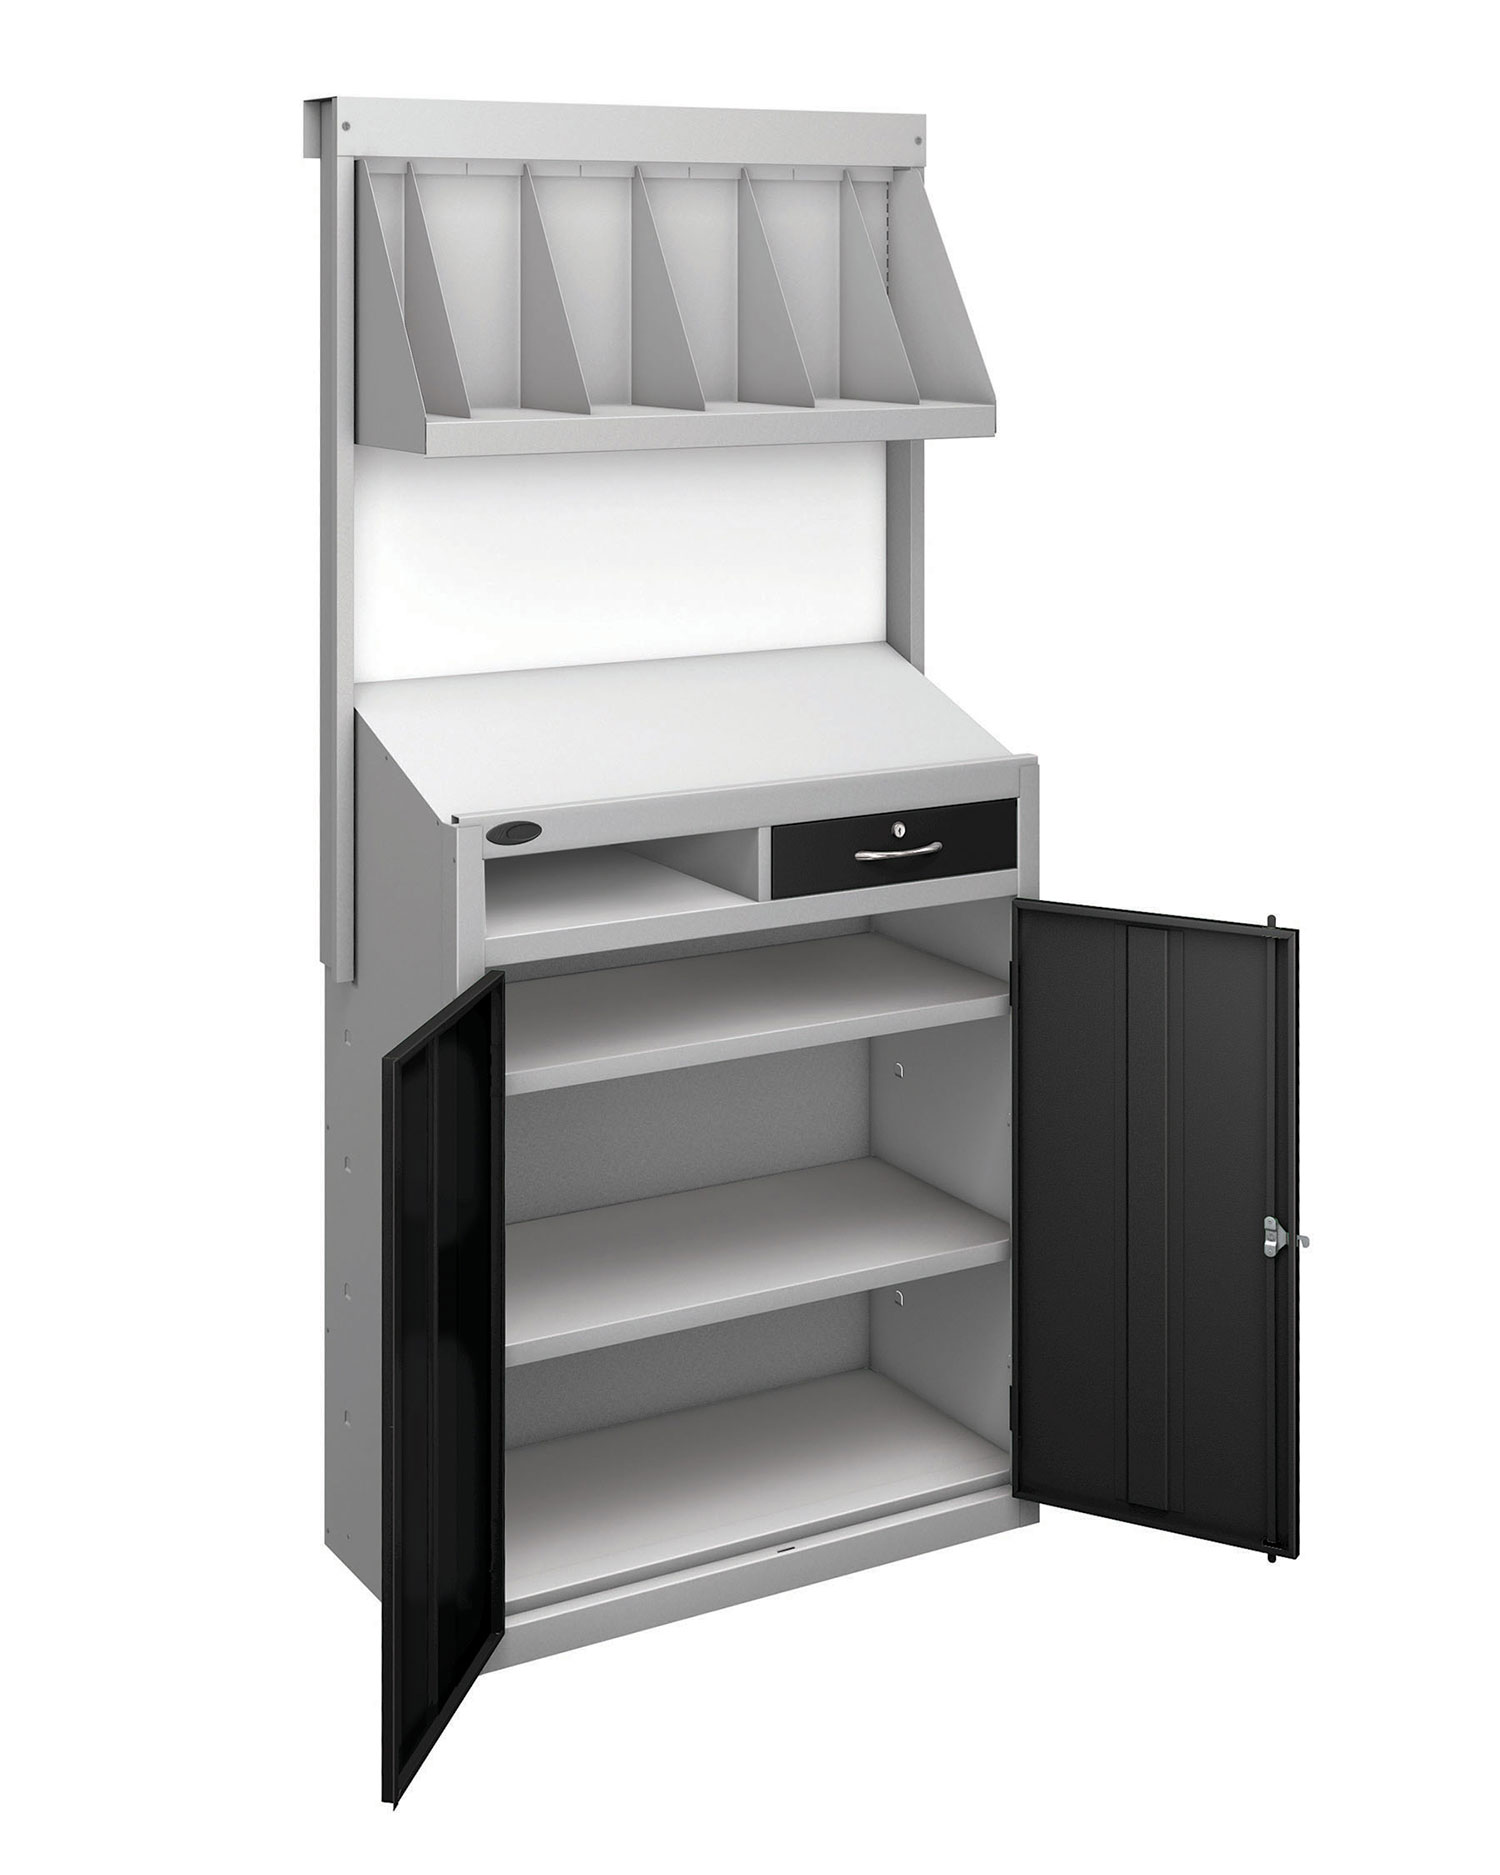 Probe workstation bookshelf black